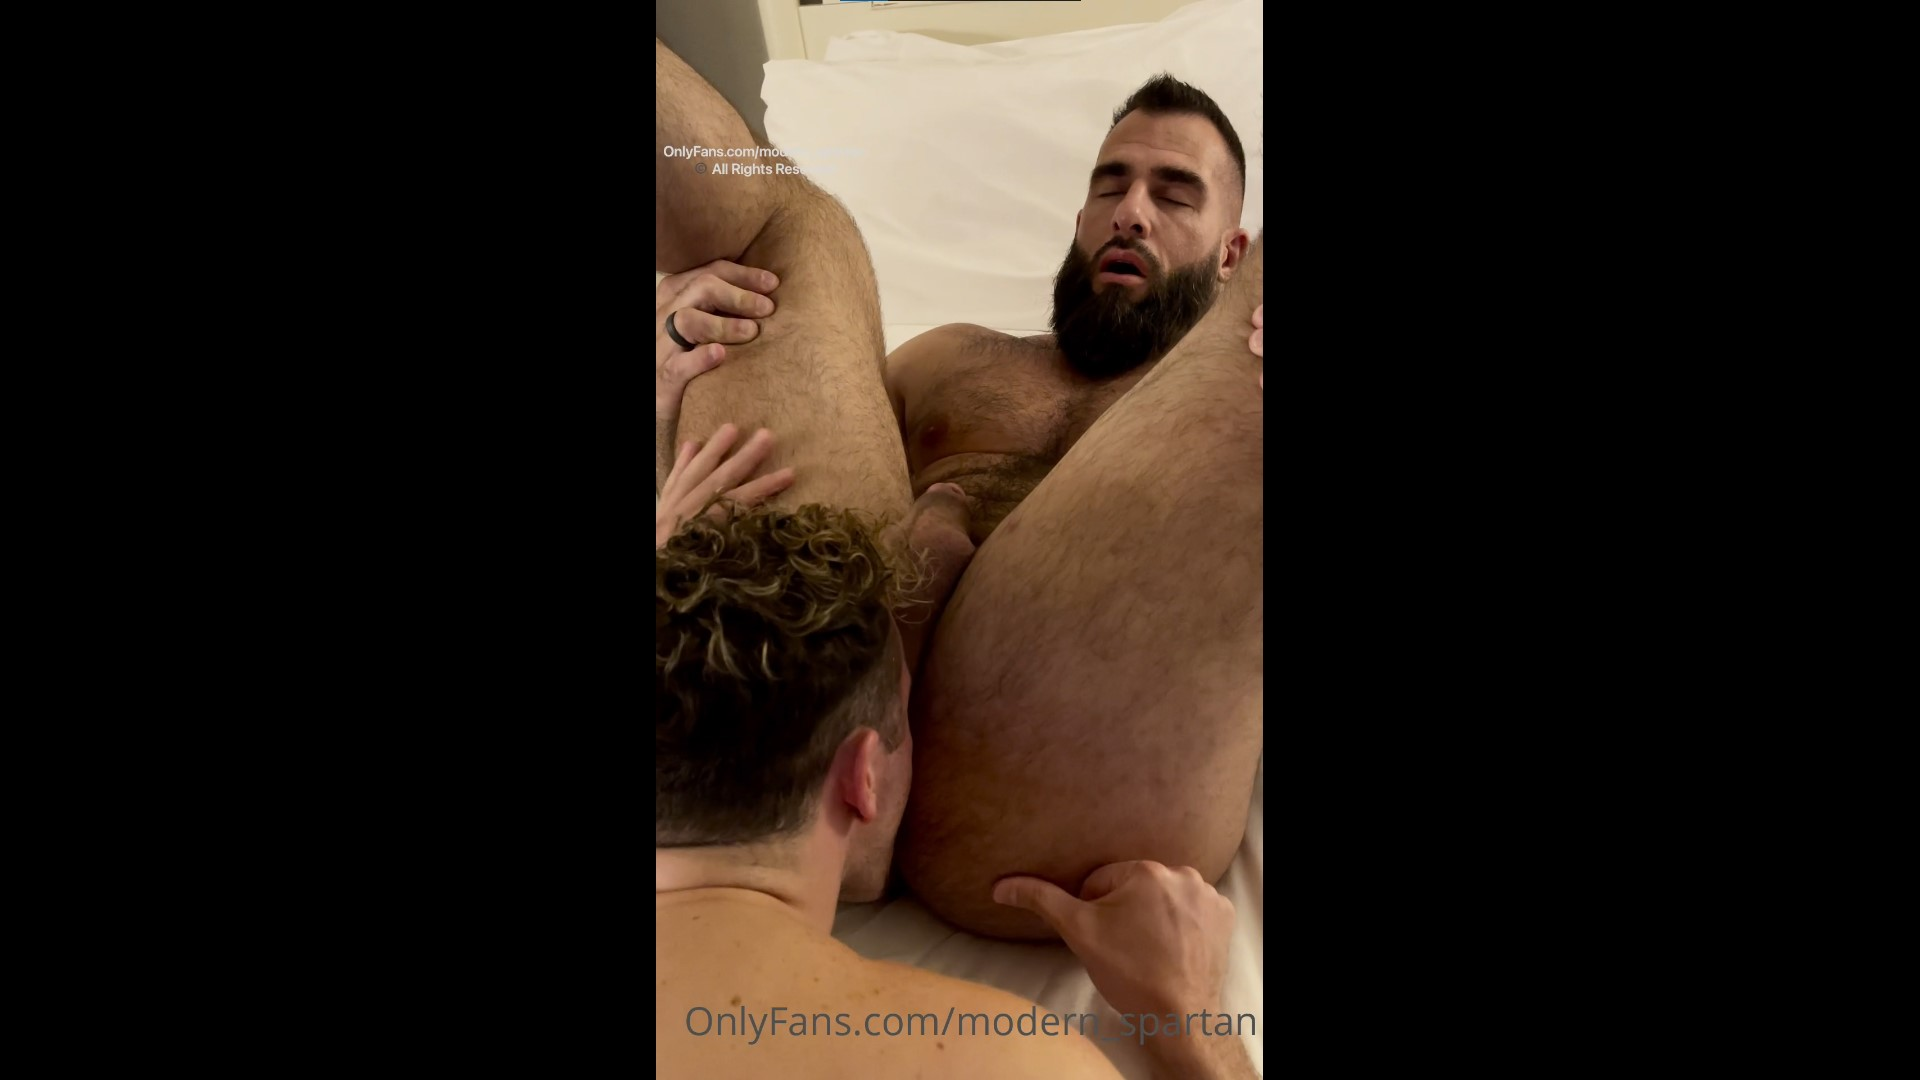 Rimming and playing with Nick's ass till he cums - Nick Pulos (Modern_spartan) - Max Richards (jerk_circus)